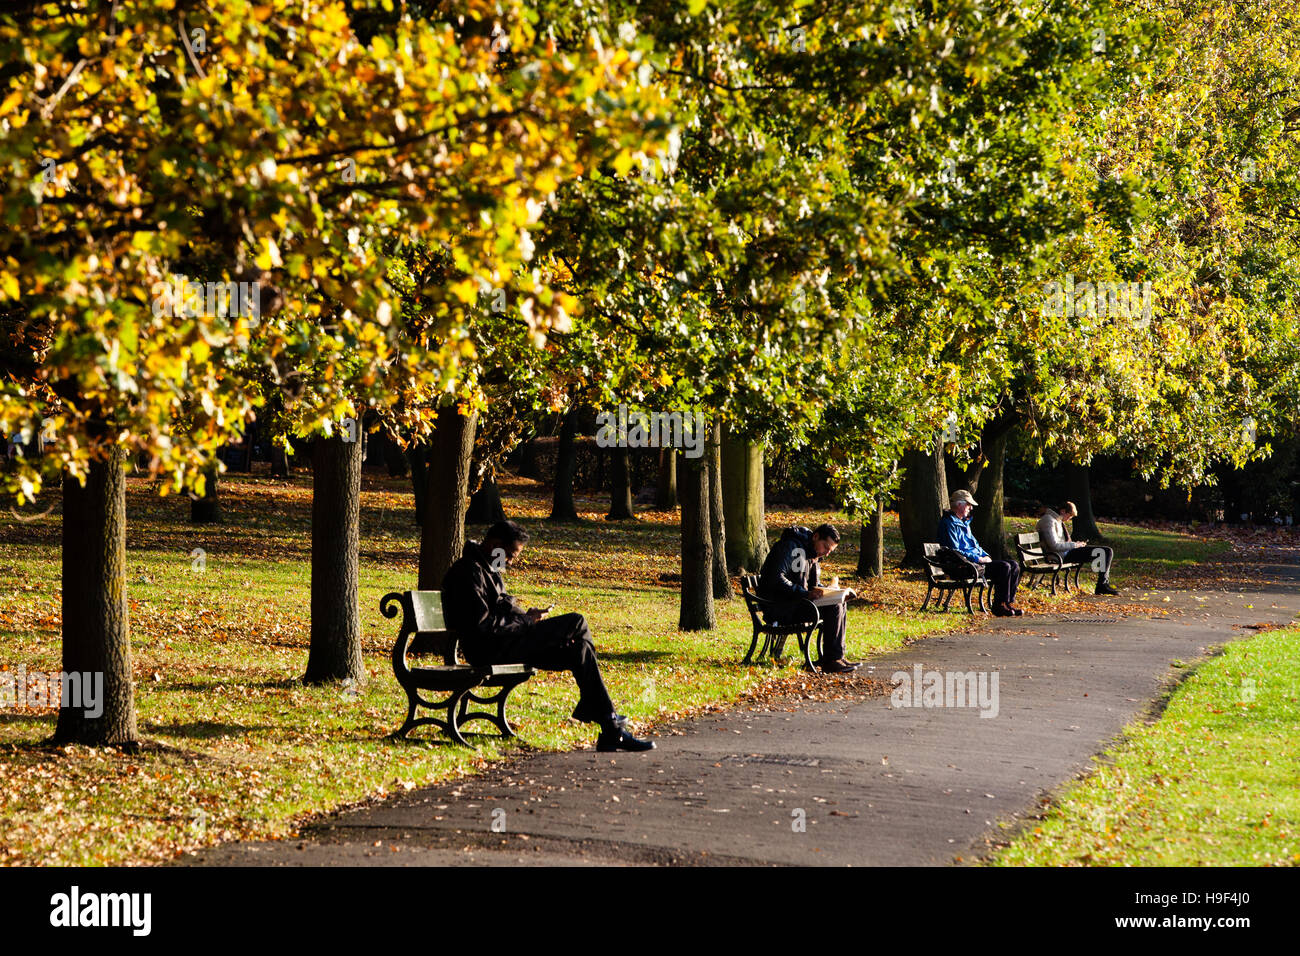 Sitting quietly on the benches in Regents Park London on an autumnal day - Stock Image